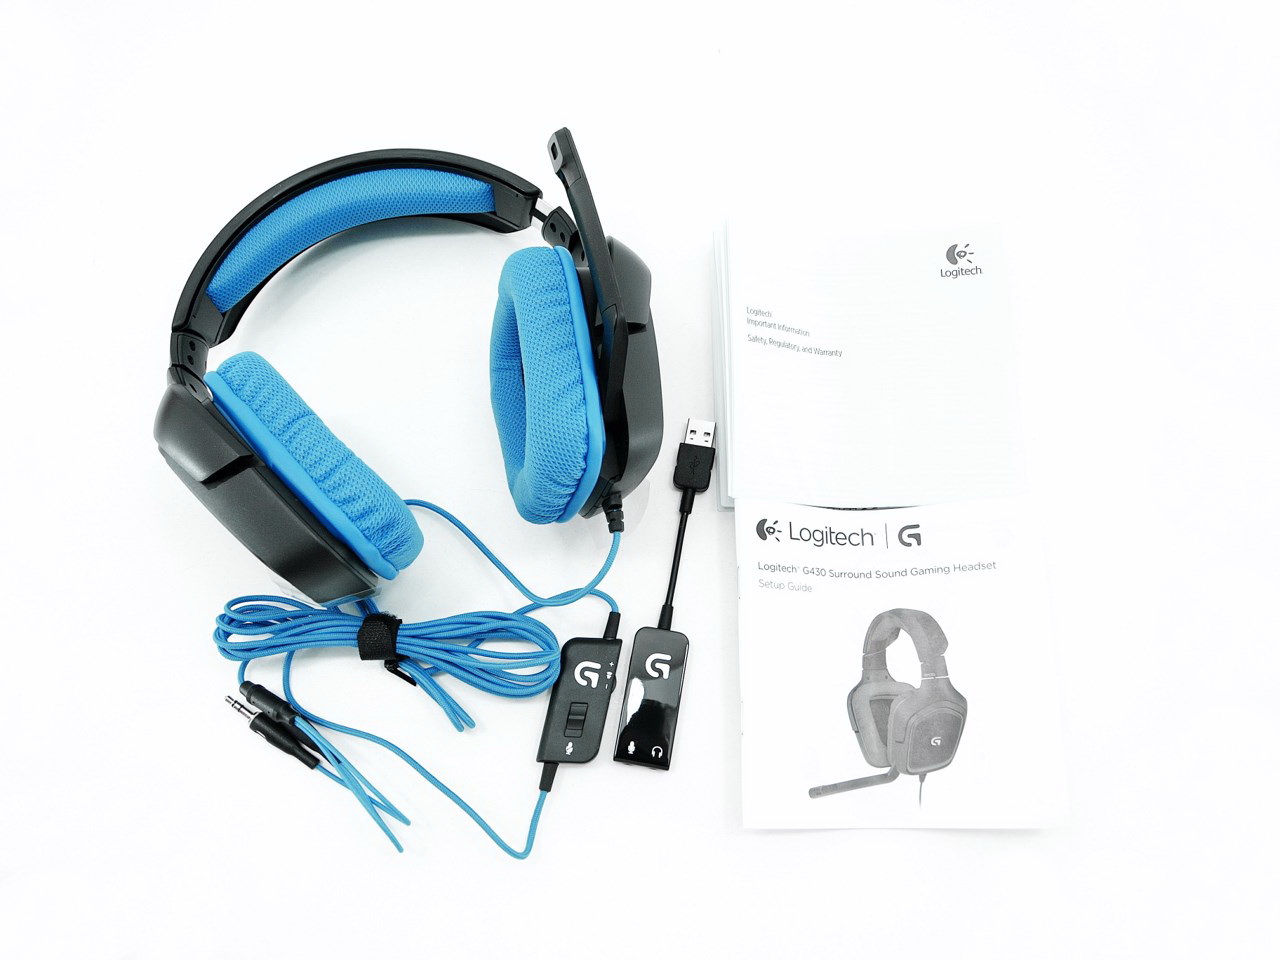 d6439b51710 Logitech G430 Surround Sound Gaming Headset Review